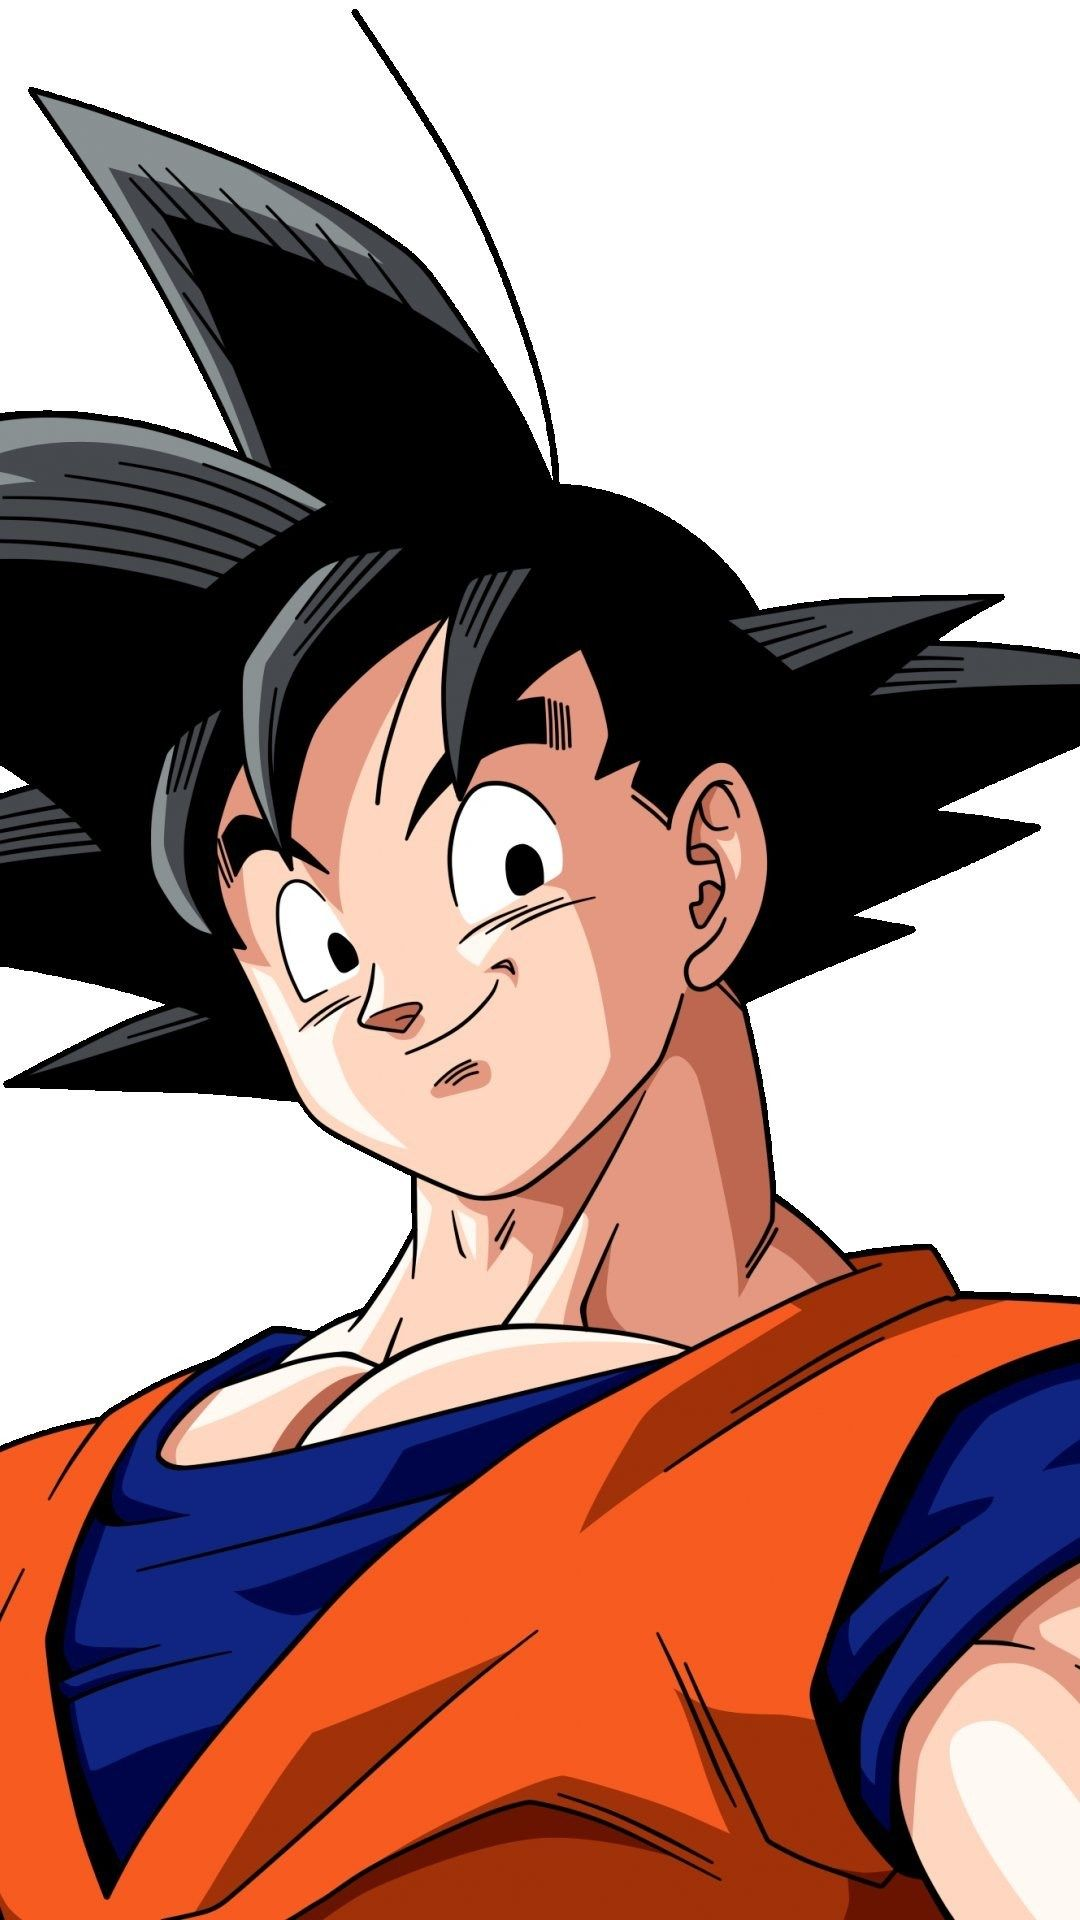 goku anime wallpapers mobile phone free images hd Anime